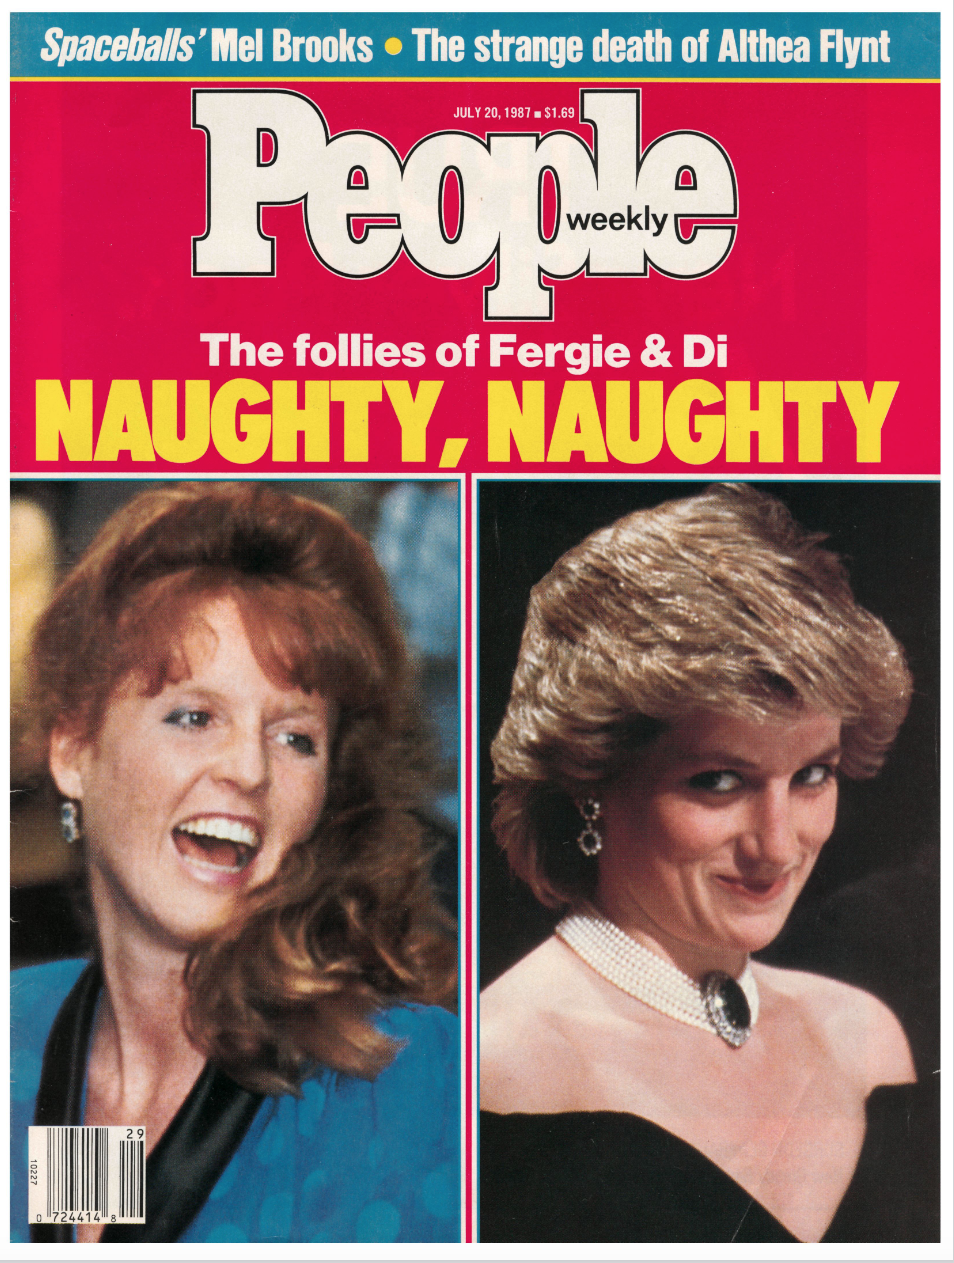 """The friendship between Fergie, then 27, and 26-year-old Diana was given a a misogynistic spin in much of the press throughout the 1980s. Dubbing the """"naughty"""" royal wives """"that international fun couple,"""" PEOPLE's 1987 cover story said, """"Di relishes Sarah's lighthearted company."""""""